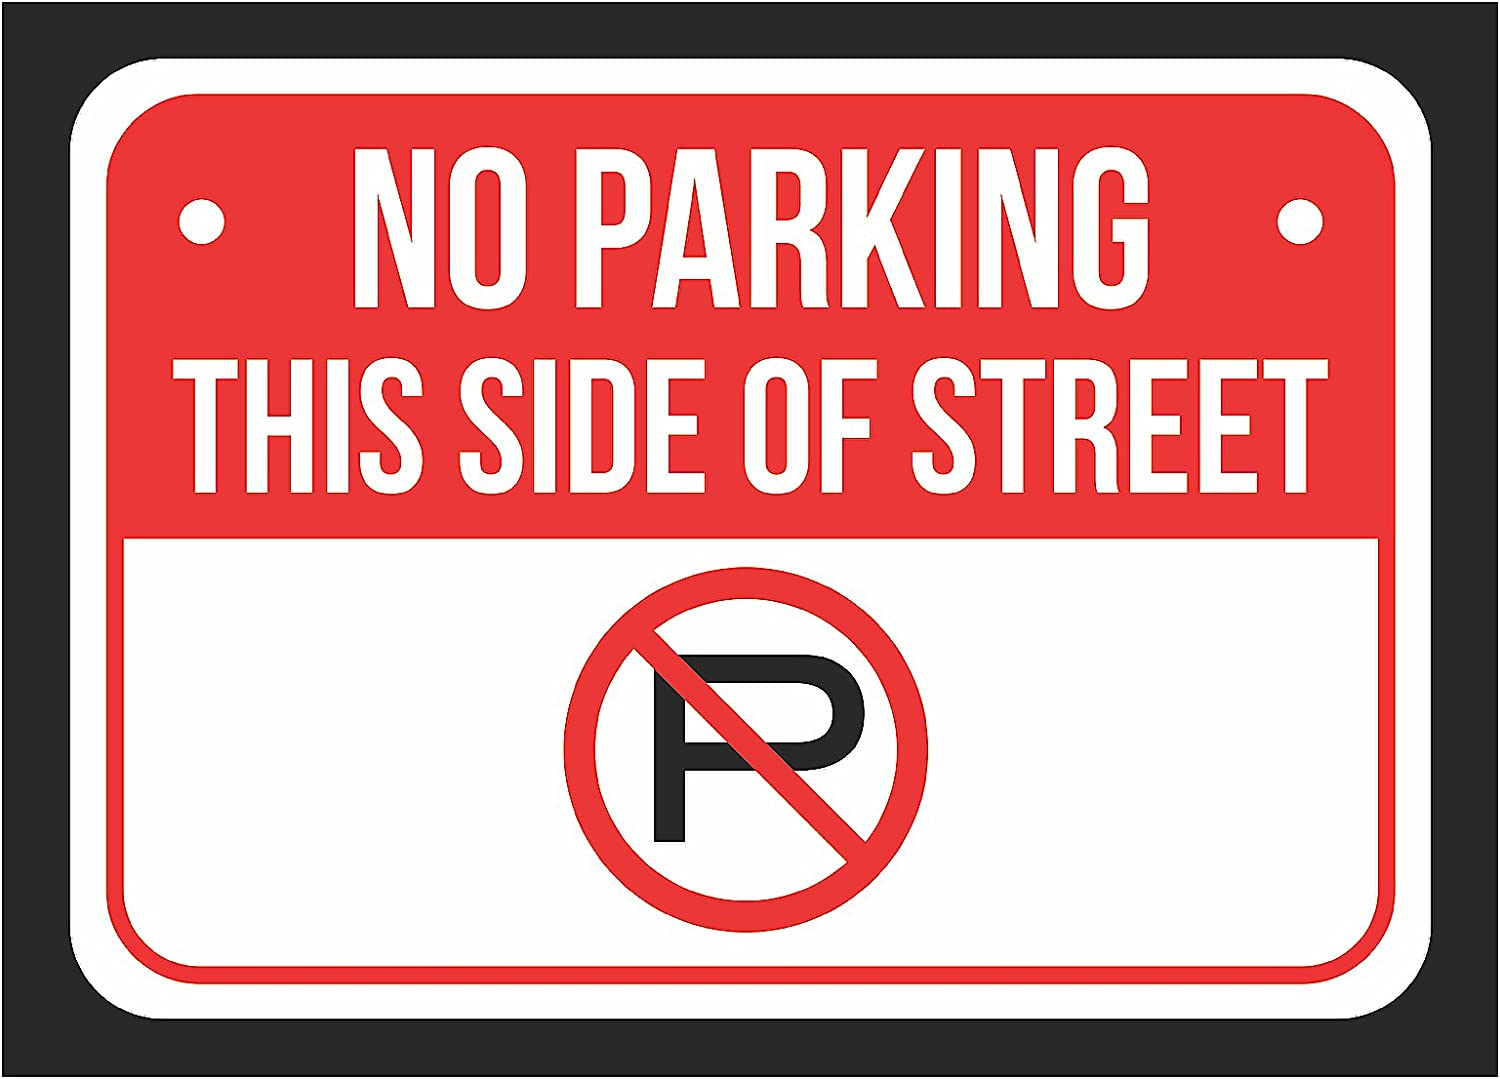 - Amazon.com : No Parking This Side Of Street Print Red, White And